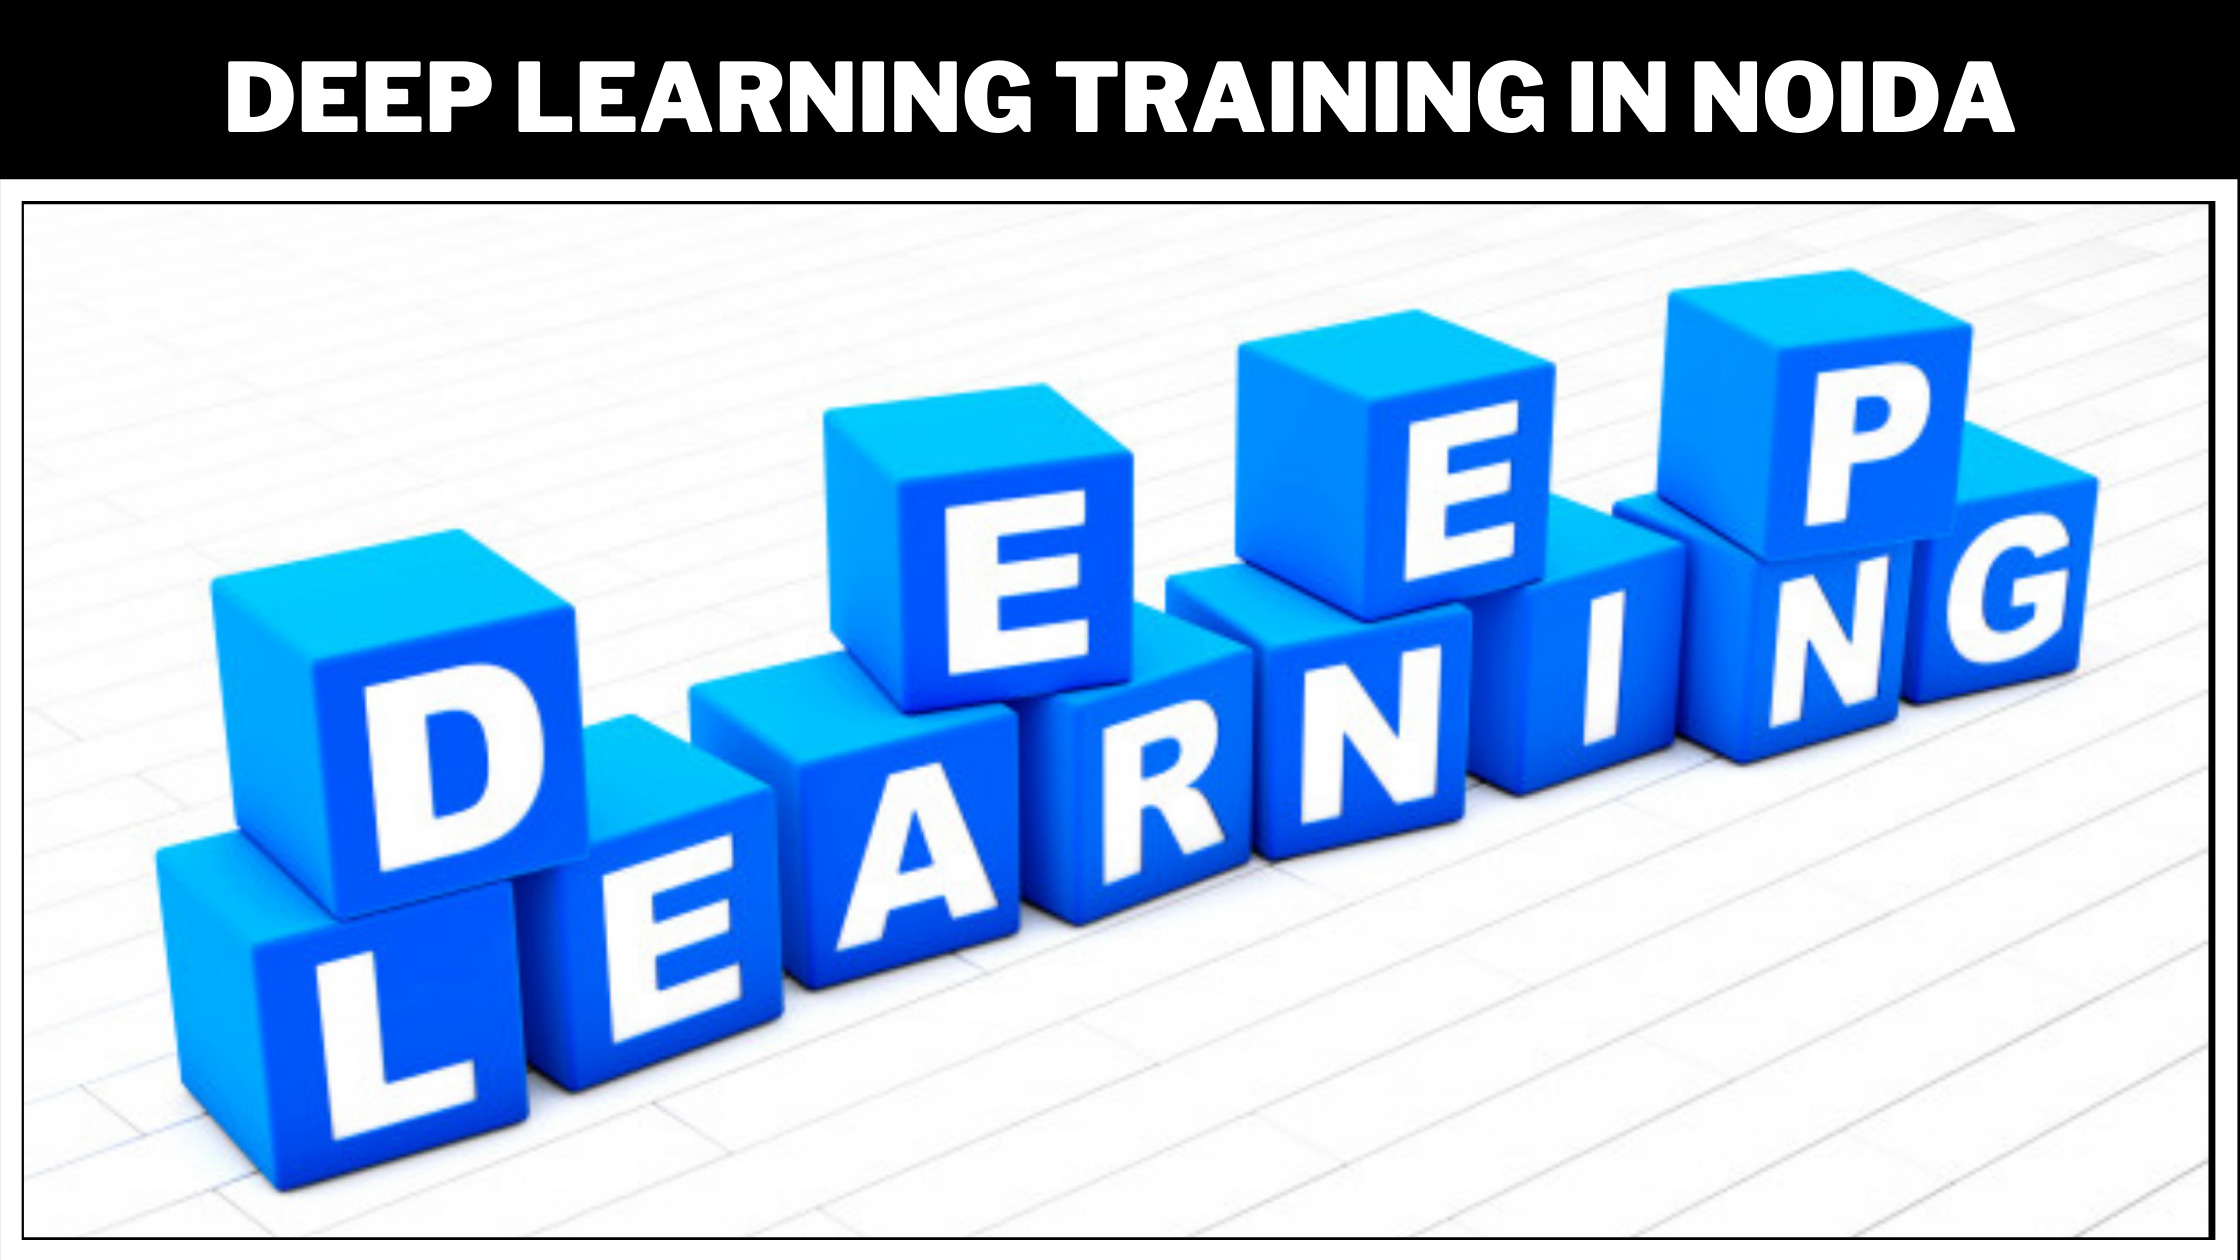 deep_learning_training_in_noida-seo-background.jpeg